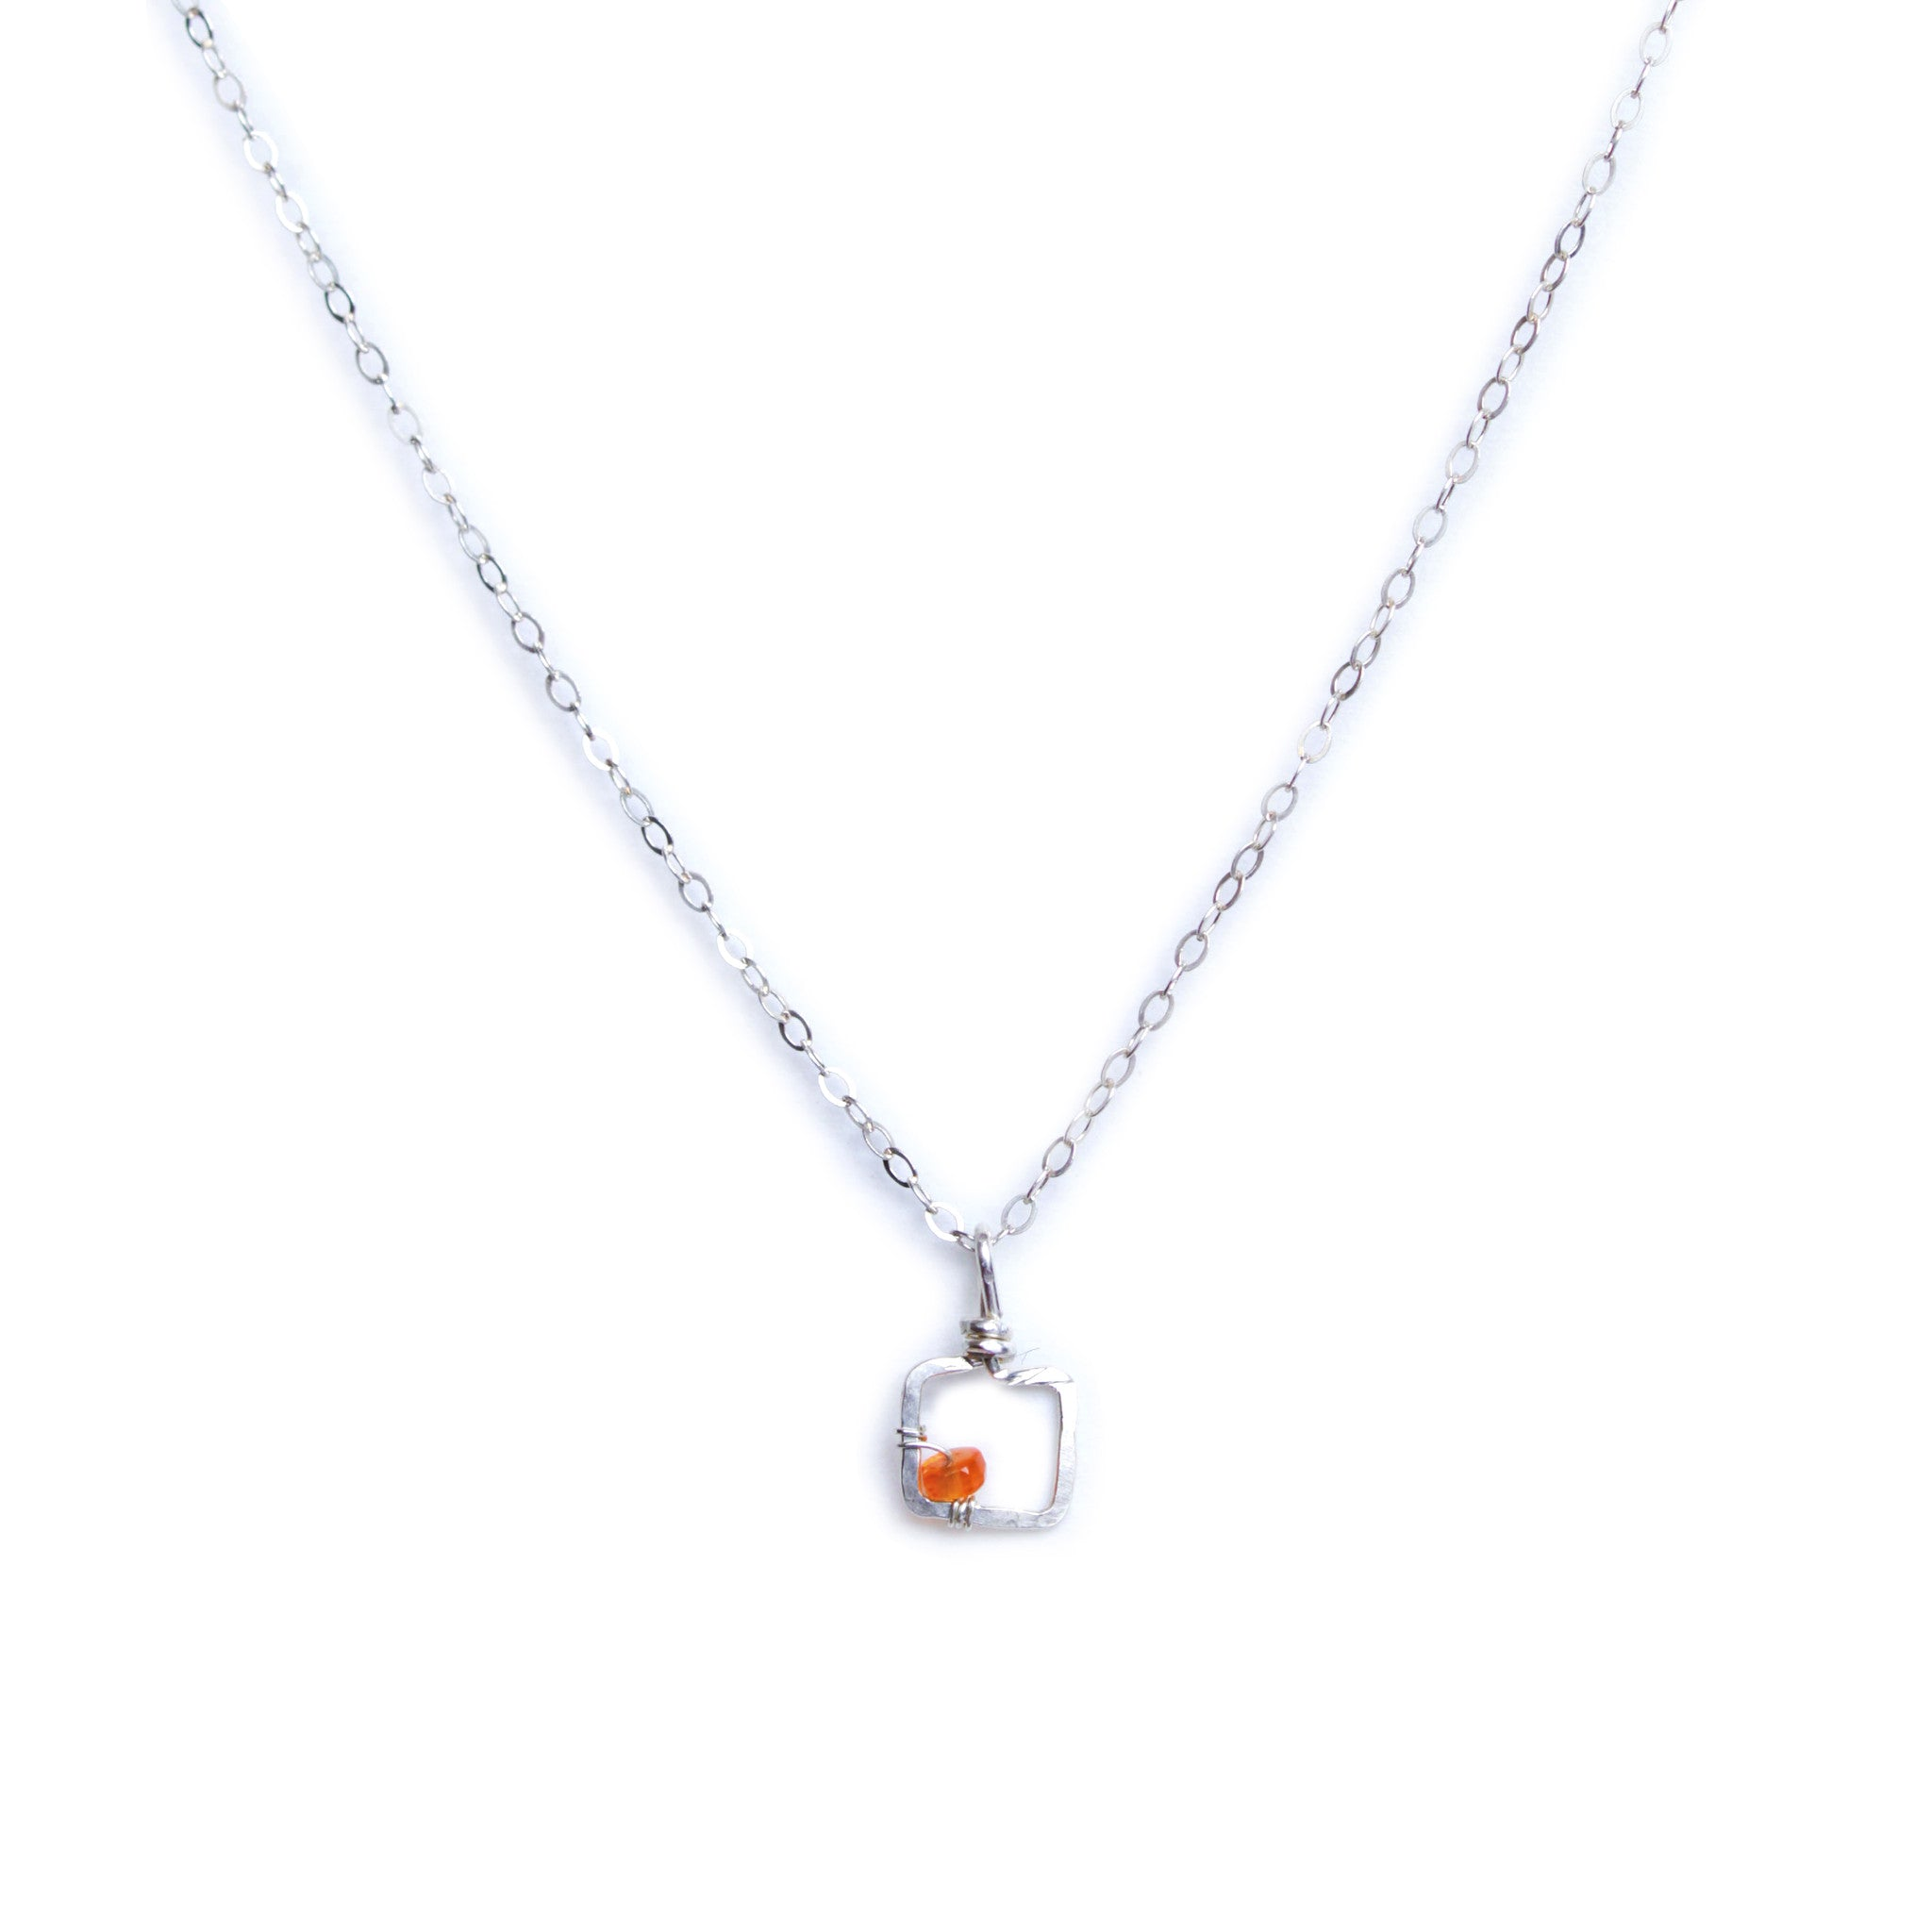 opal fire necklace ecuatwitt pendant black